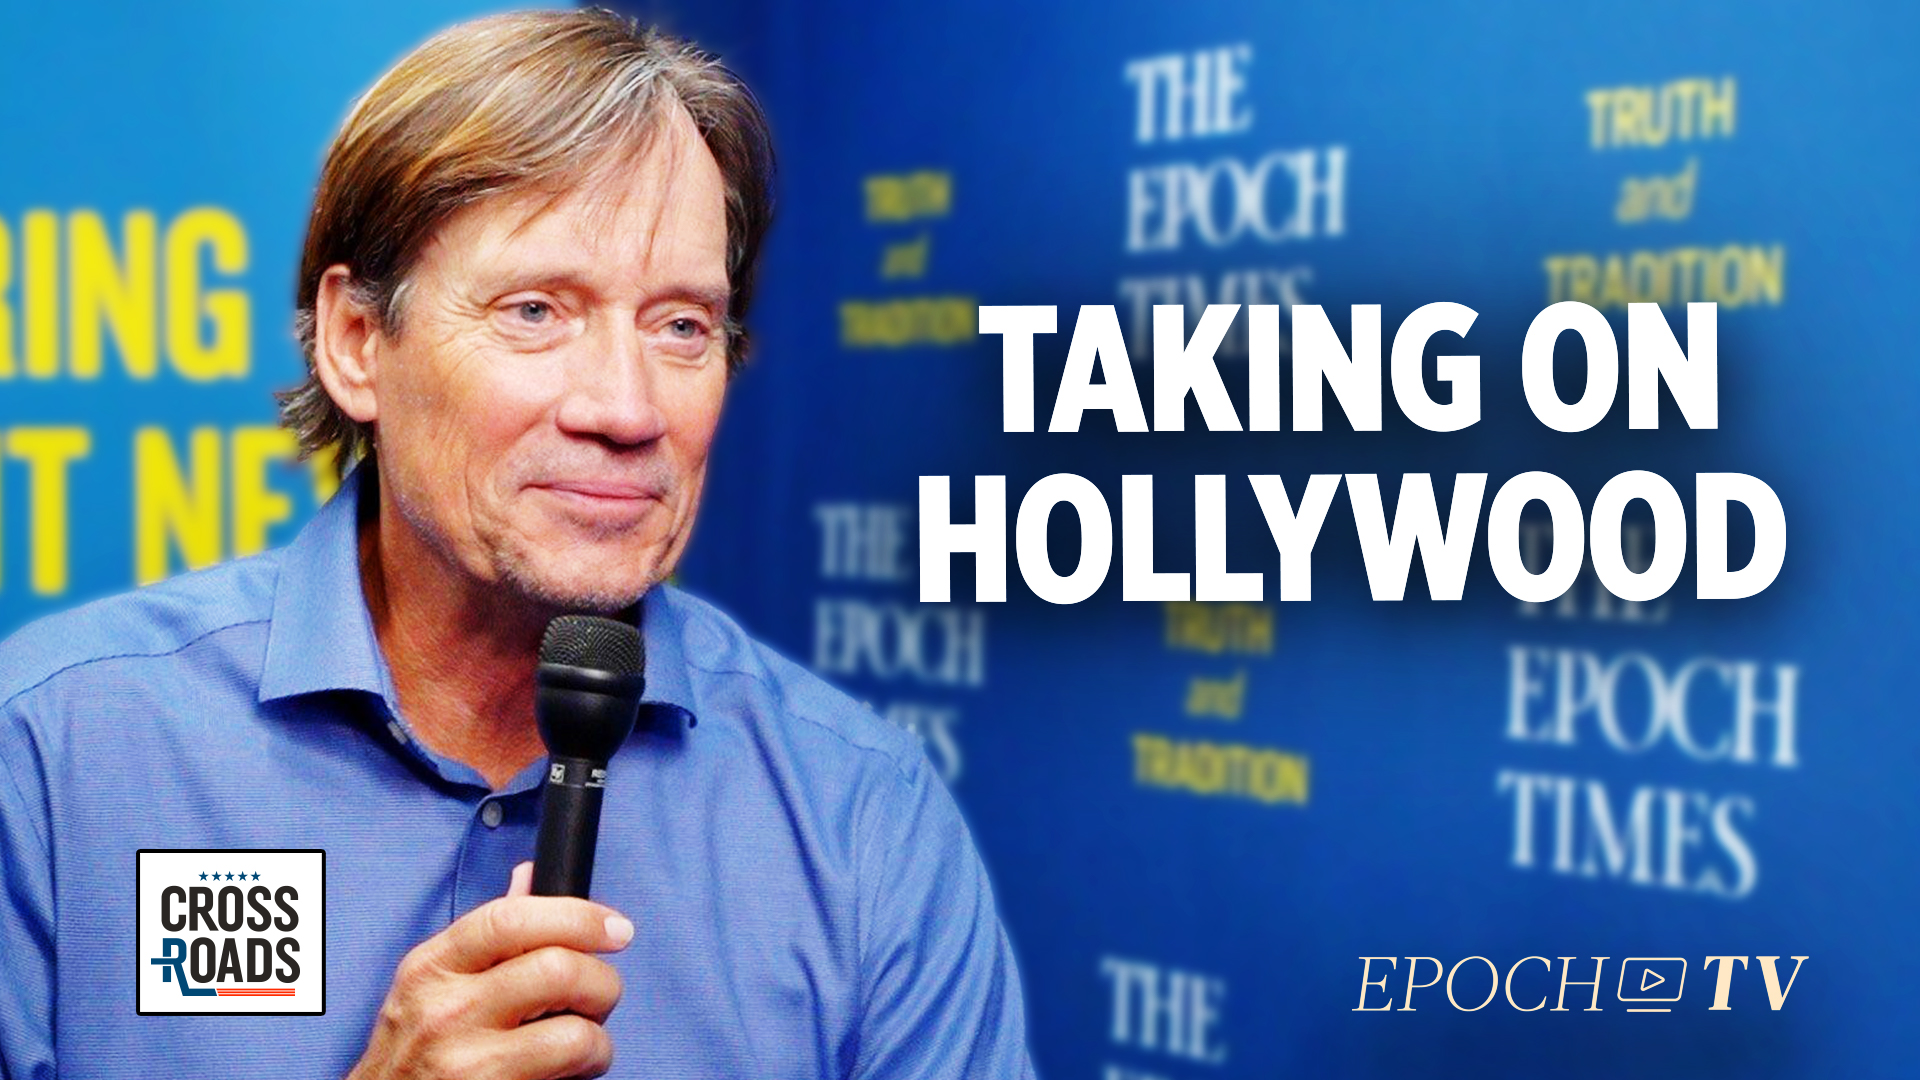 theepochtimes.com - Gina Sturdza - Kevin Sorbo: Fighting the Hollywood Agenda Through Independent Films